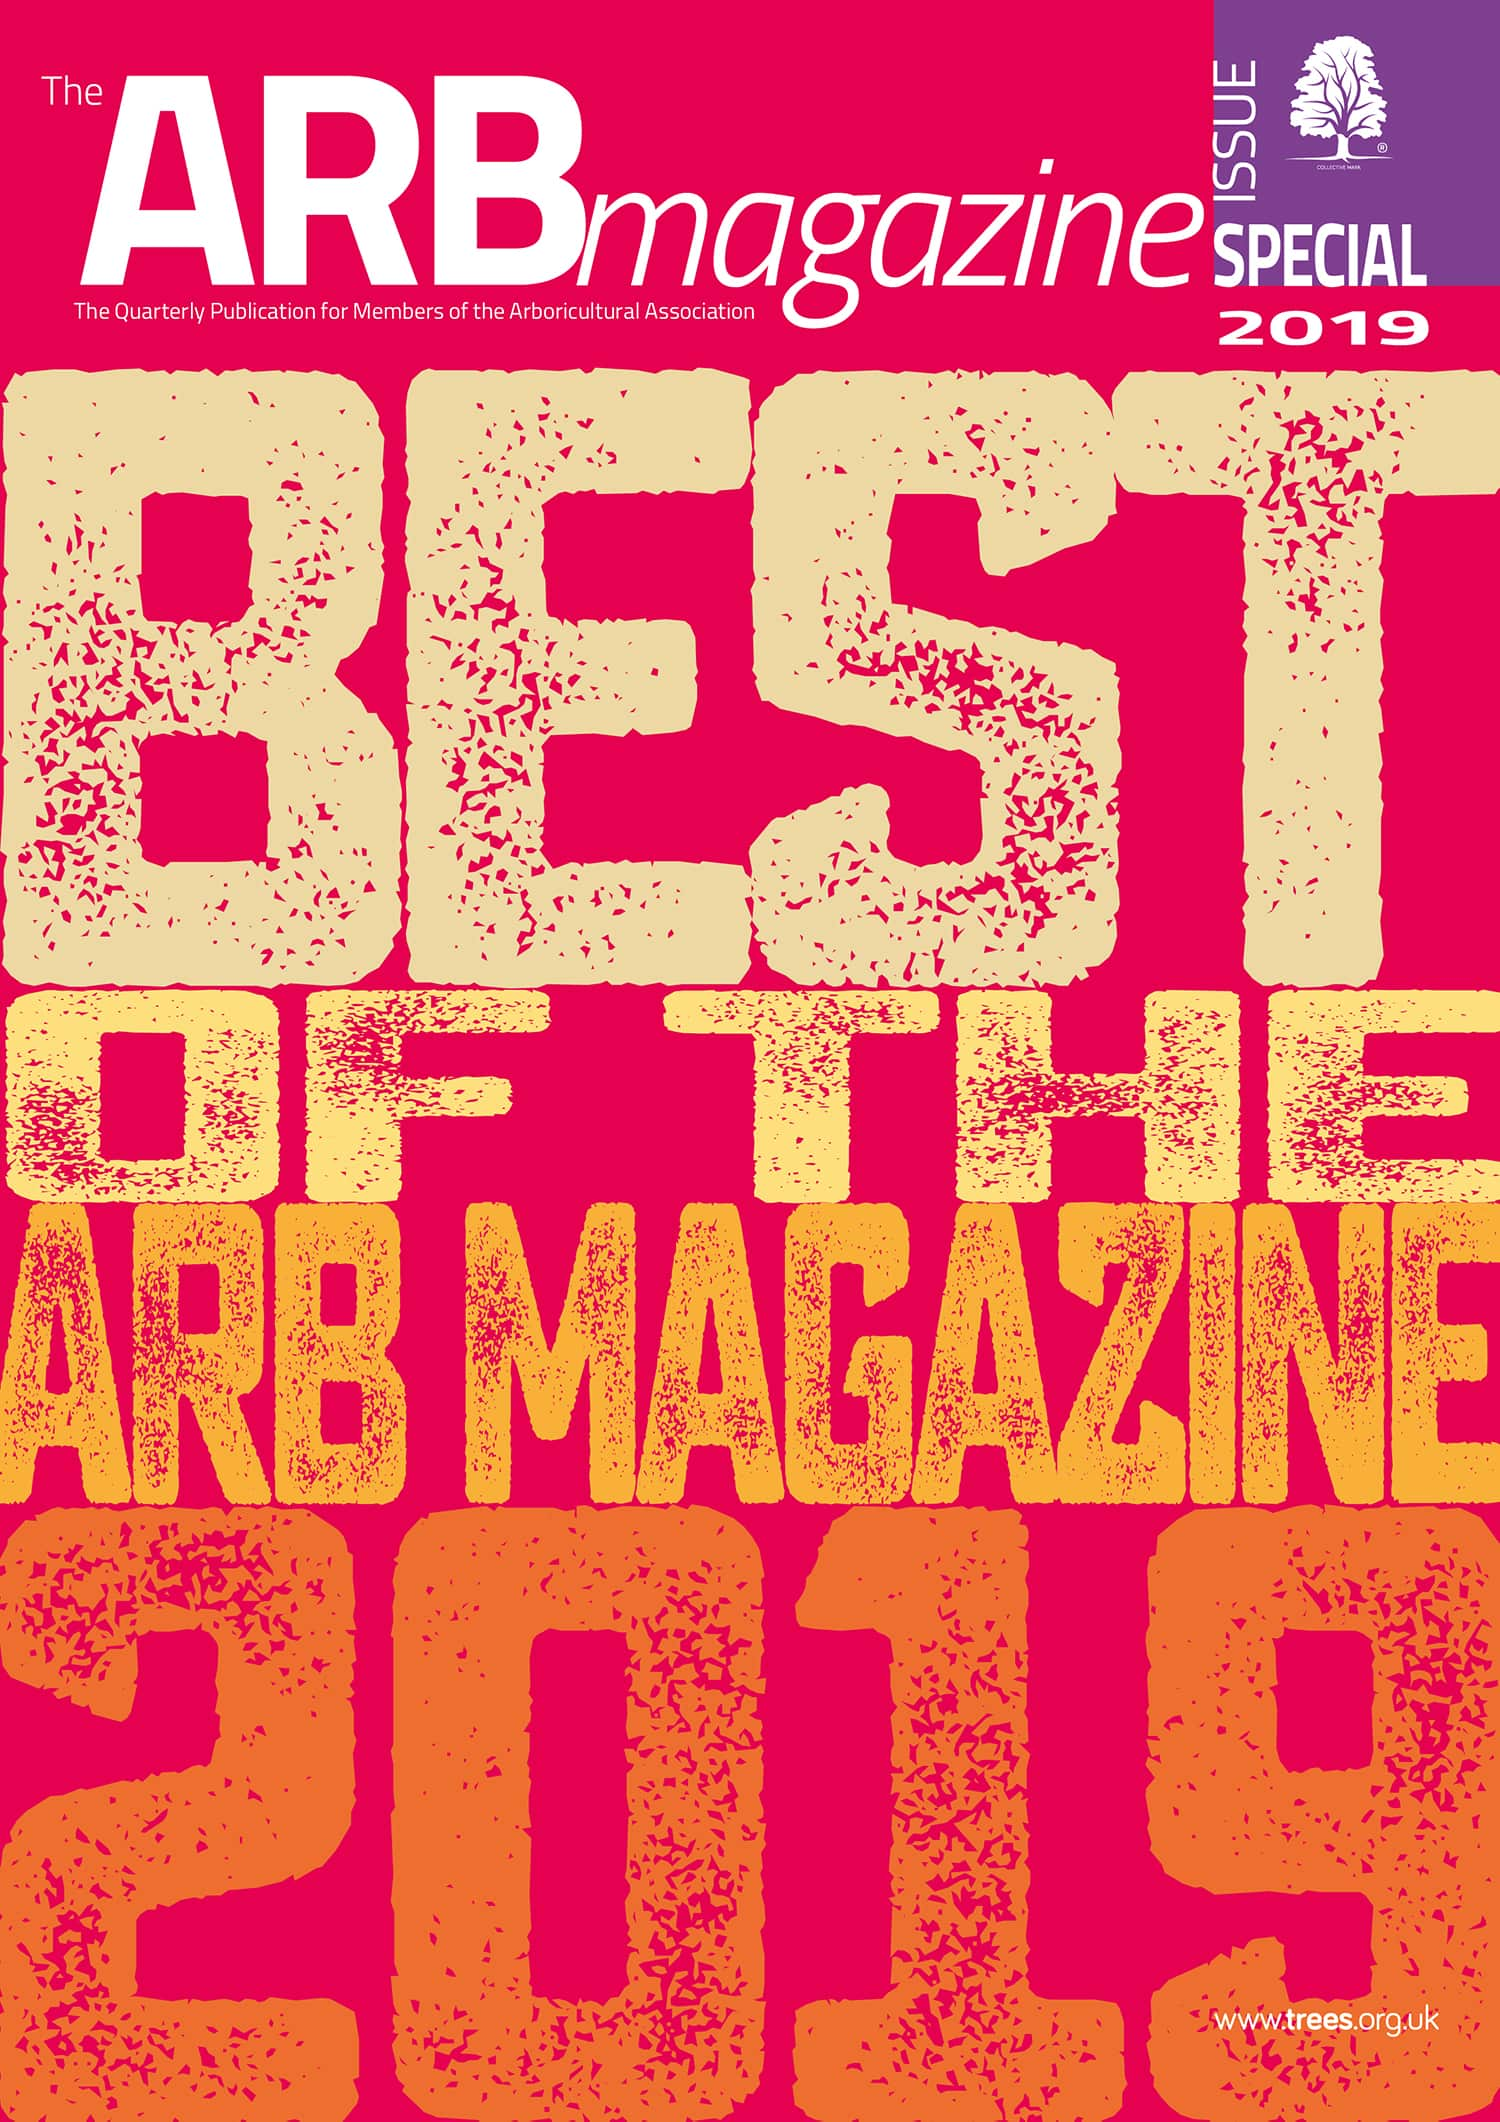 ARB Magazine Best of 2019